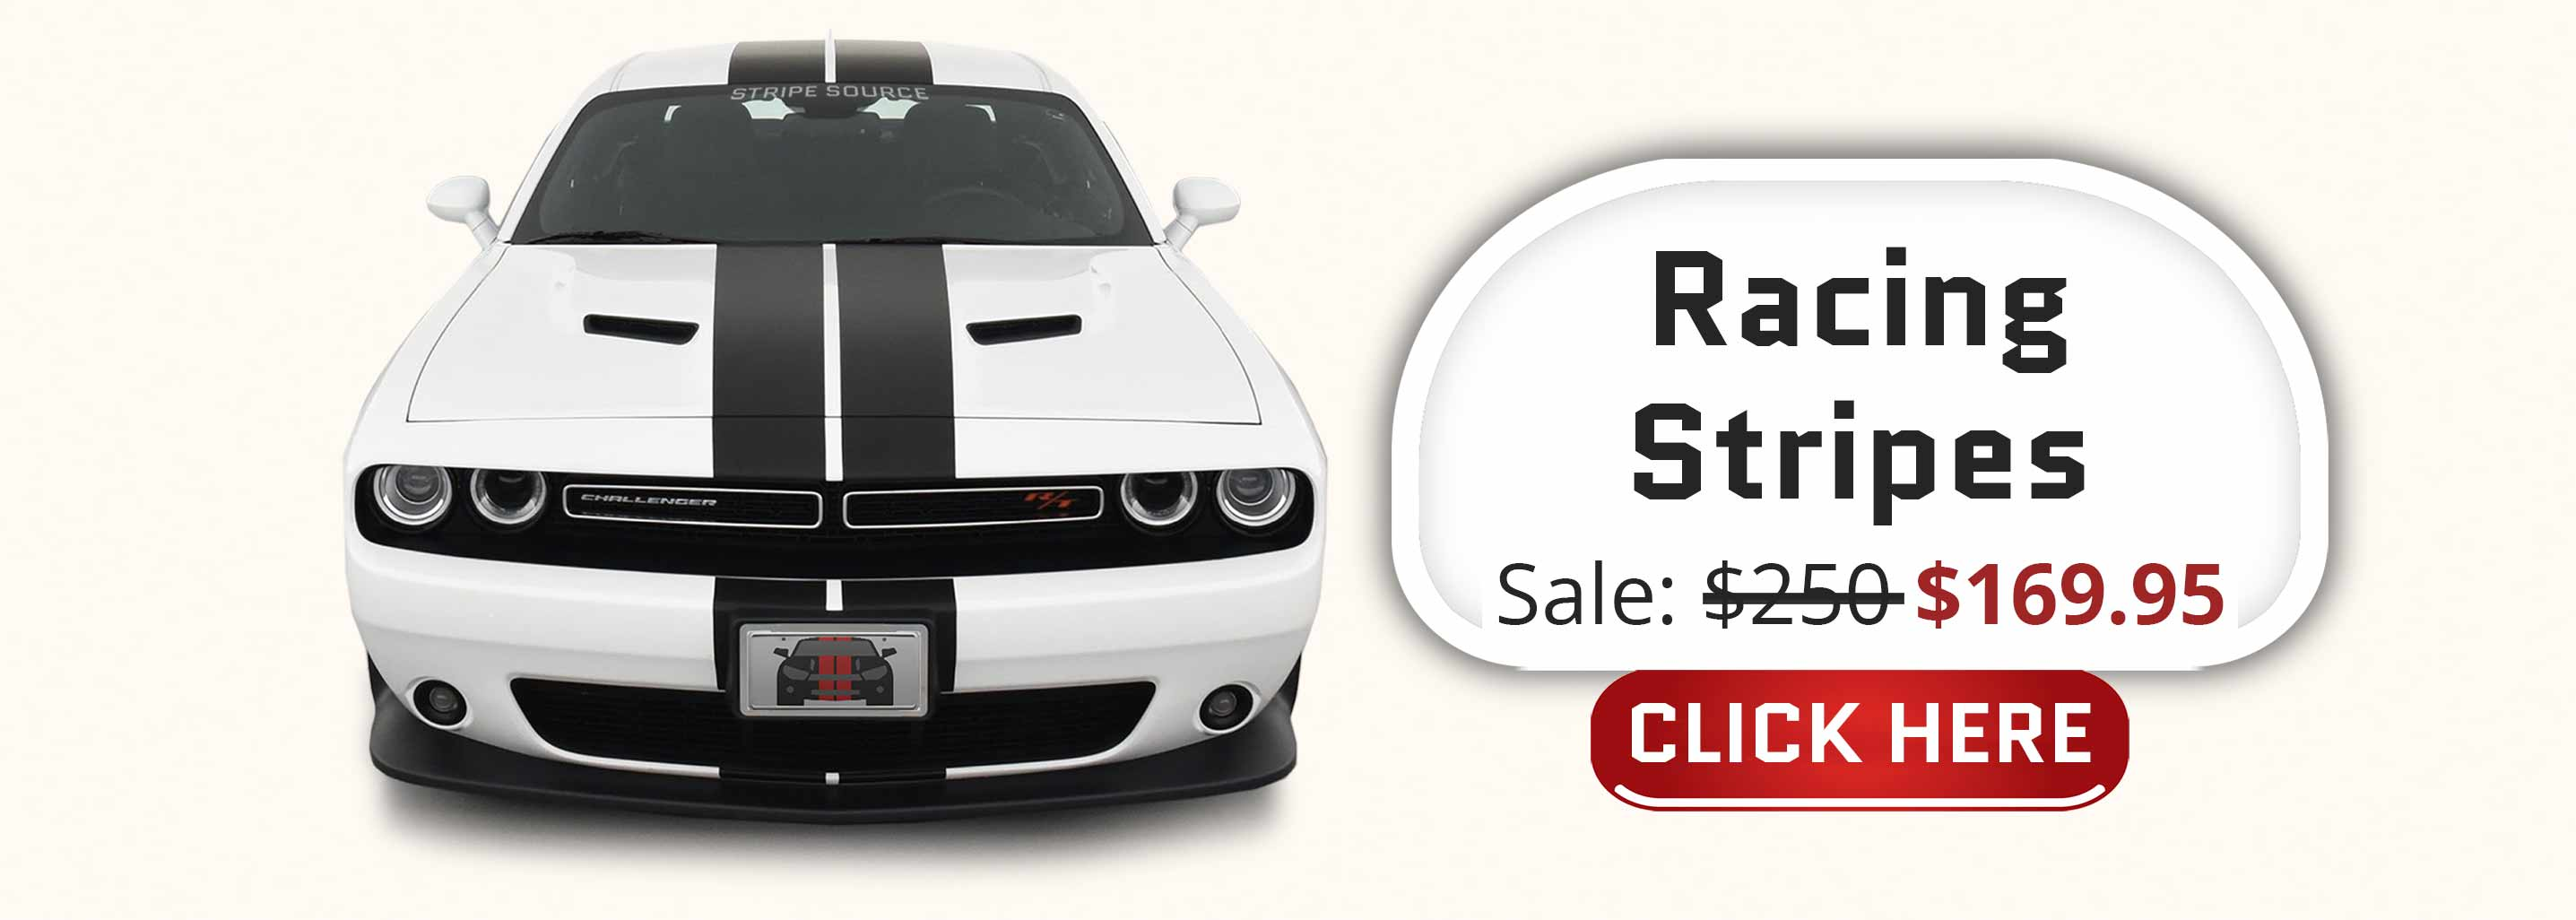 Dual black racing stripes on a red dodge challenger sxt r/t t/a 2015-2016-2017-2018-2019-2020-2021